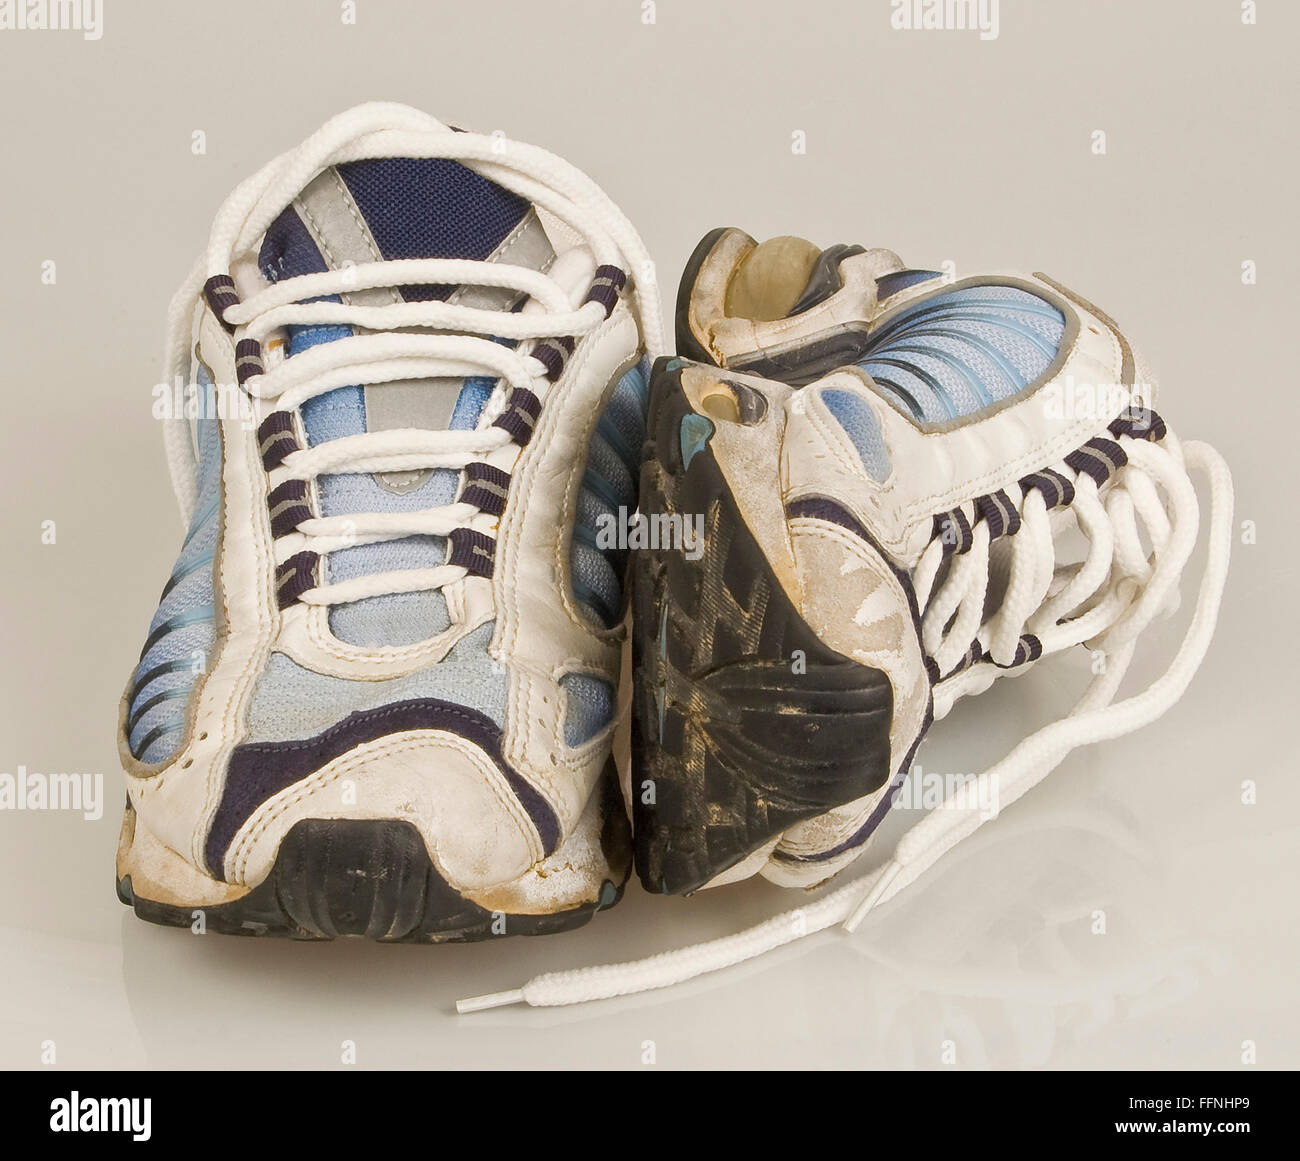 Worn Out Running Shoes - Stock Image